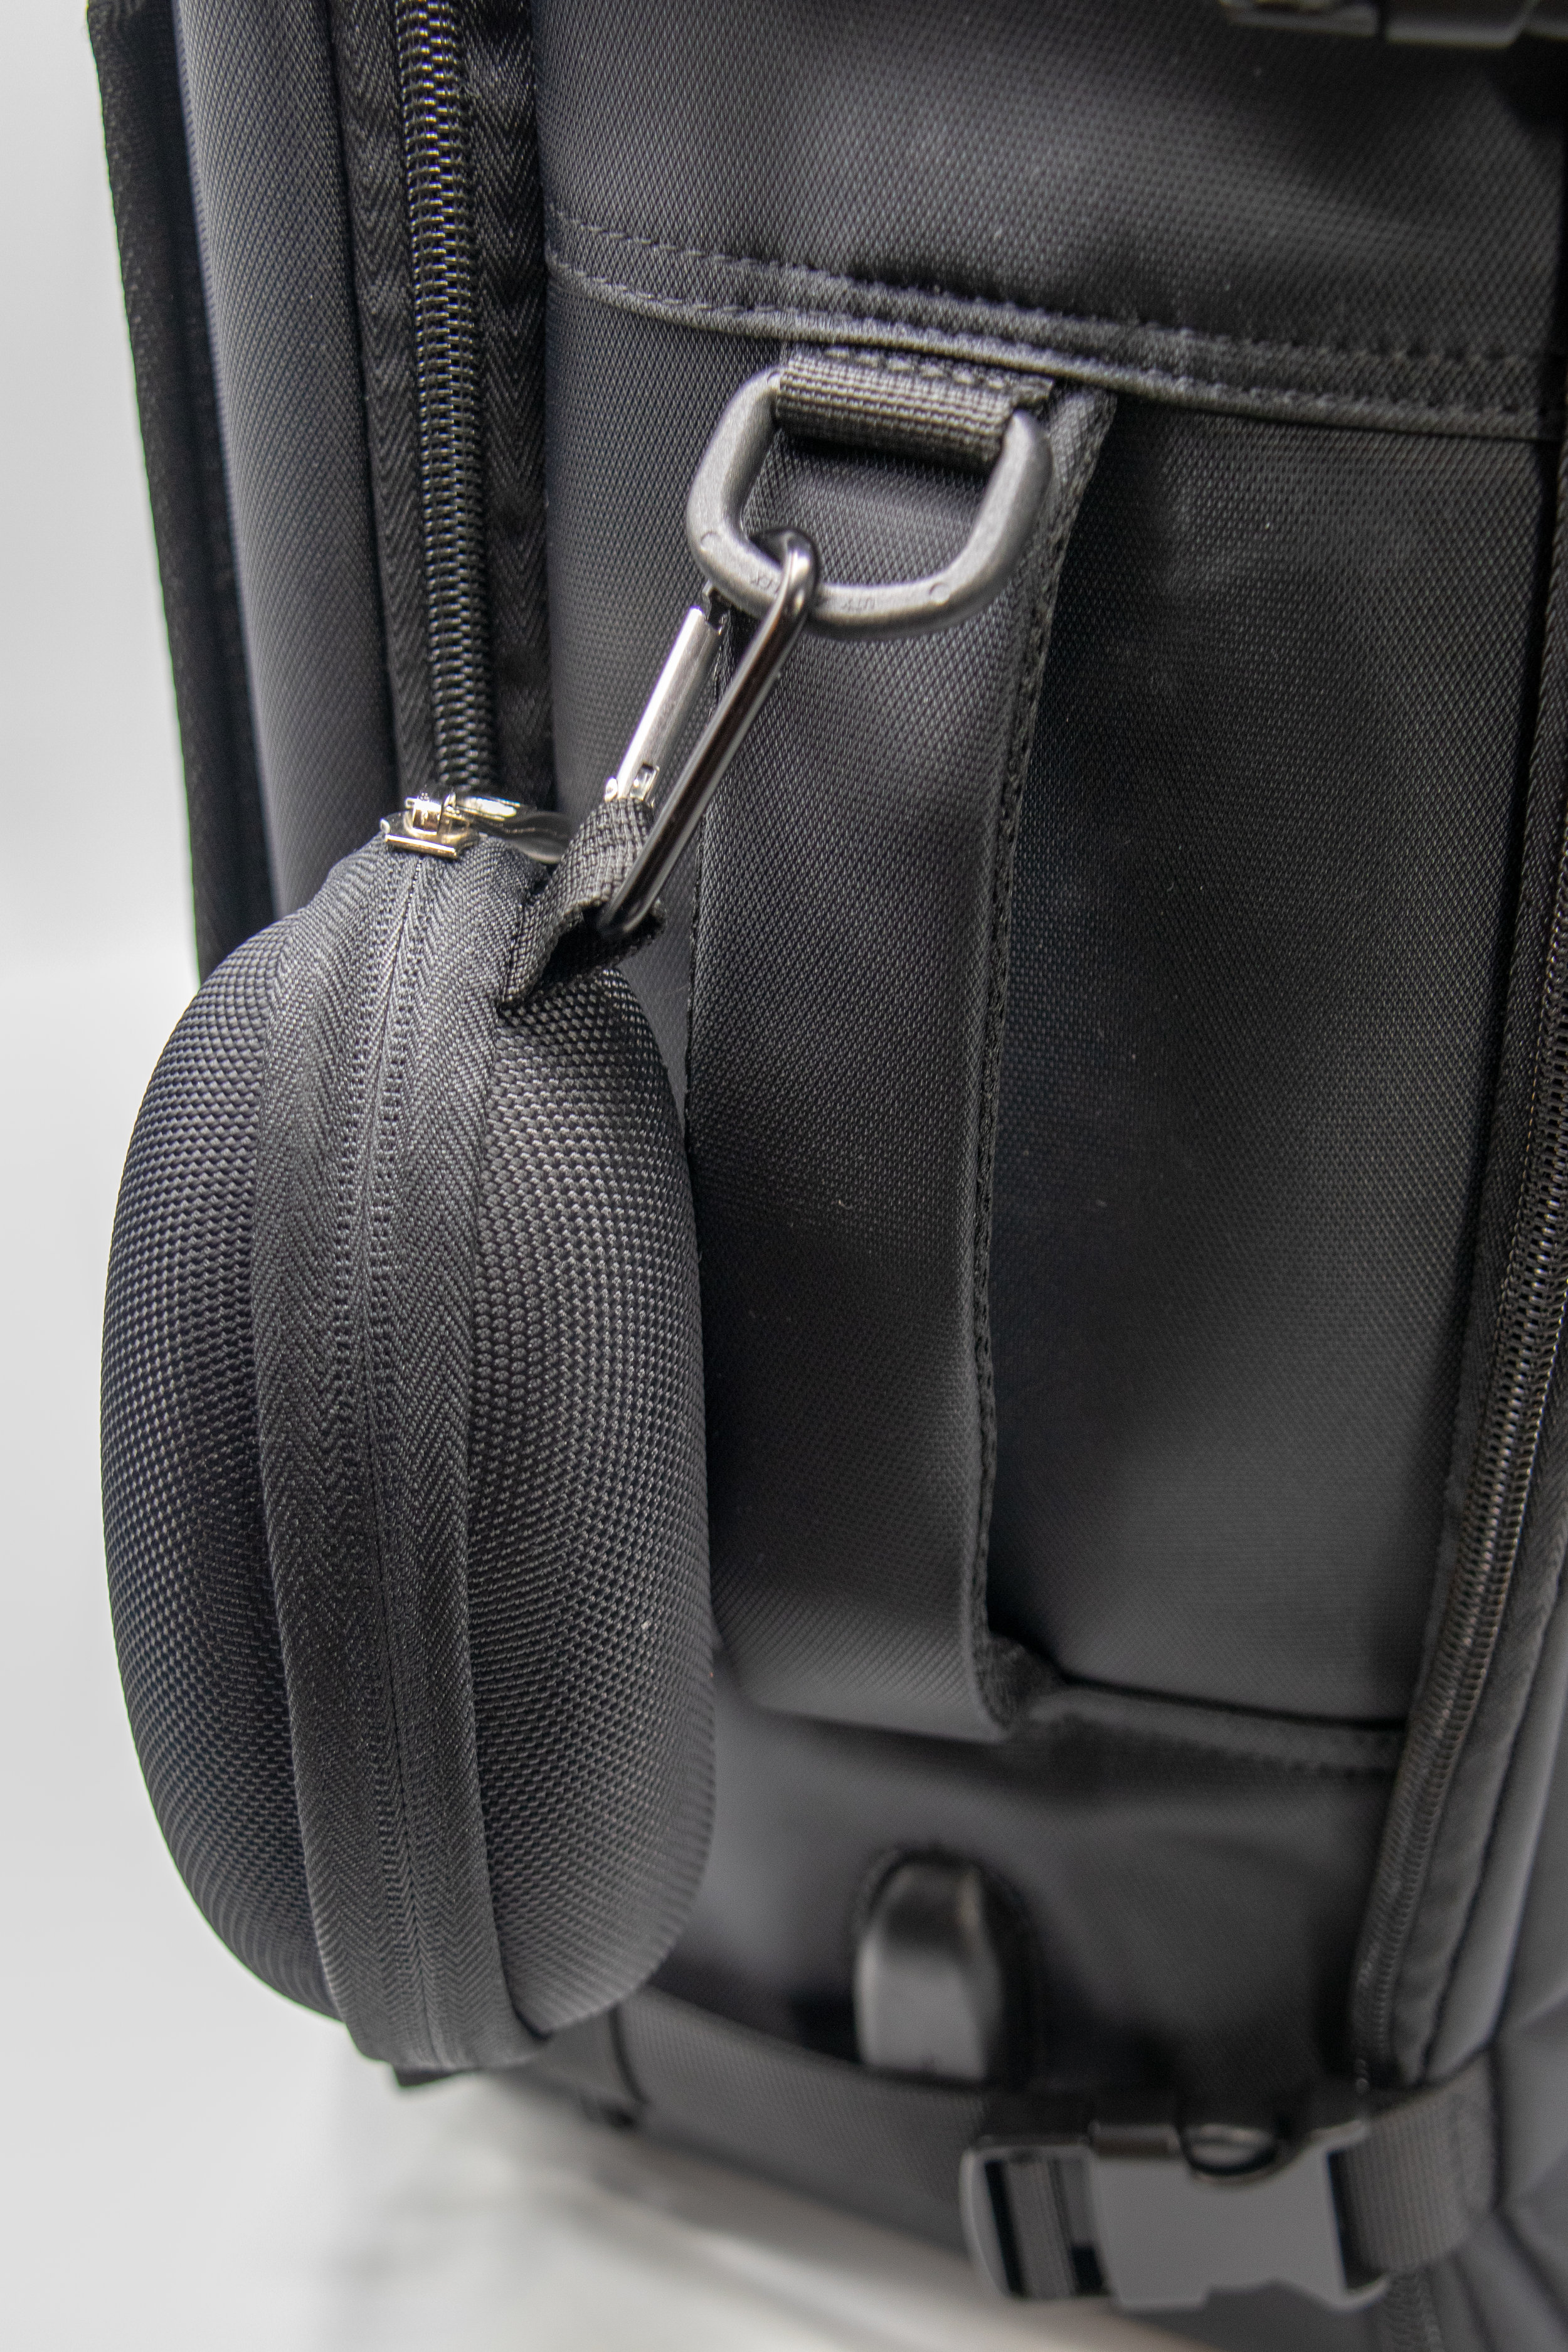 D Rings for Attaching Pouches -